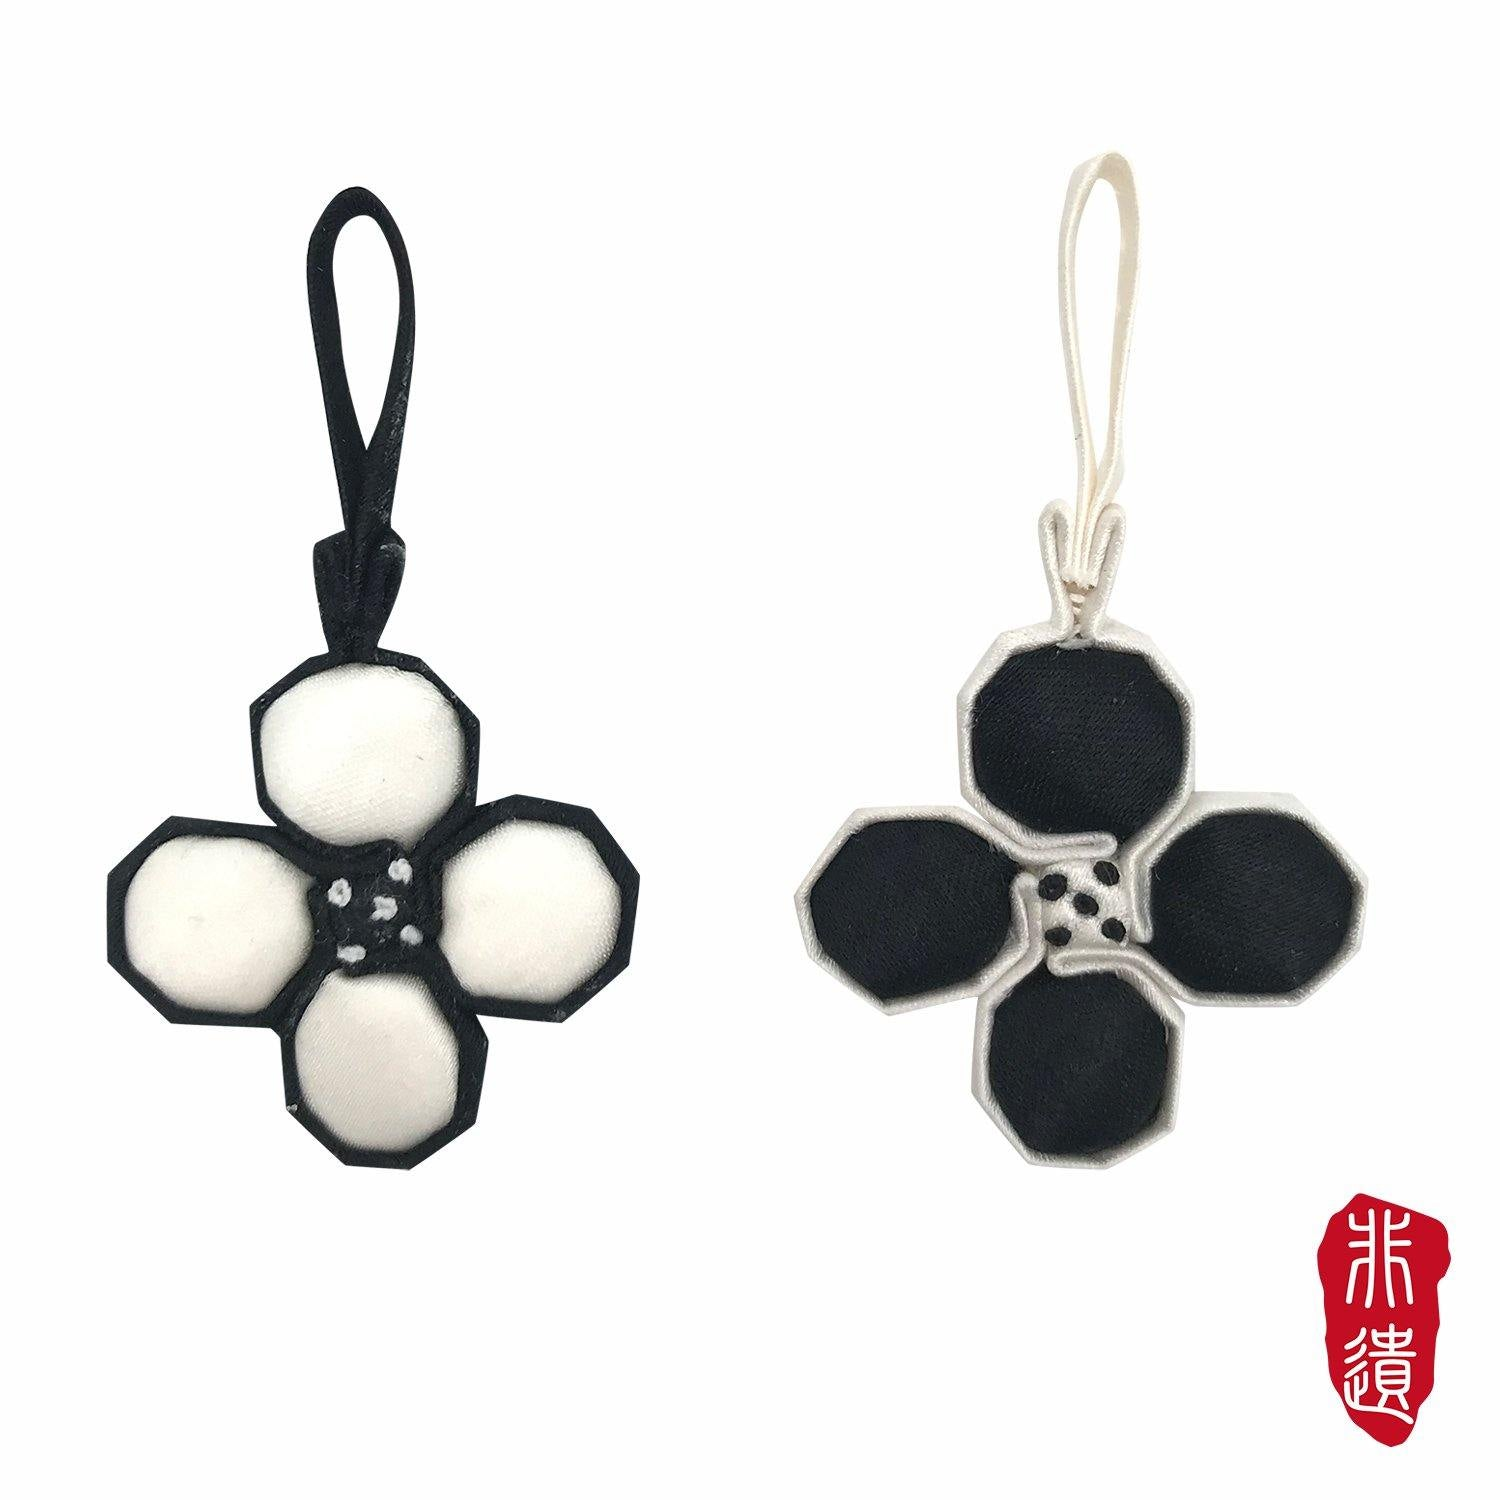 【RETRO TILE】Handcrafted Flower buttons with 925 Sterling Silver Crystal Pearl Earrings - THE SPARKLE COLLECTION by GERMAN POOL